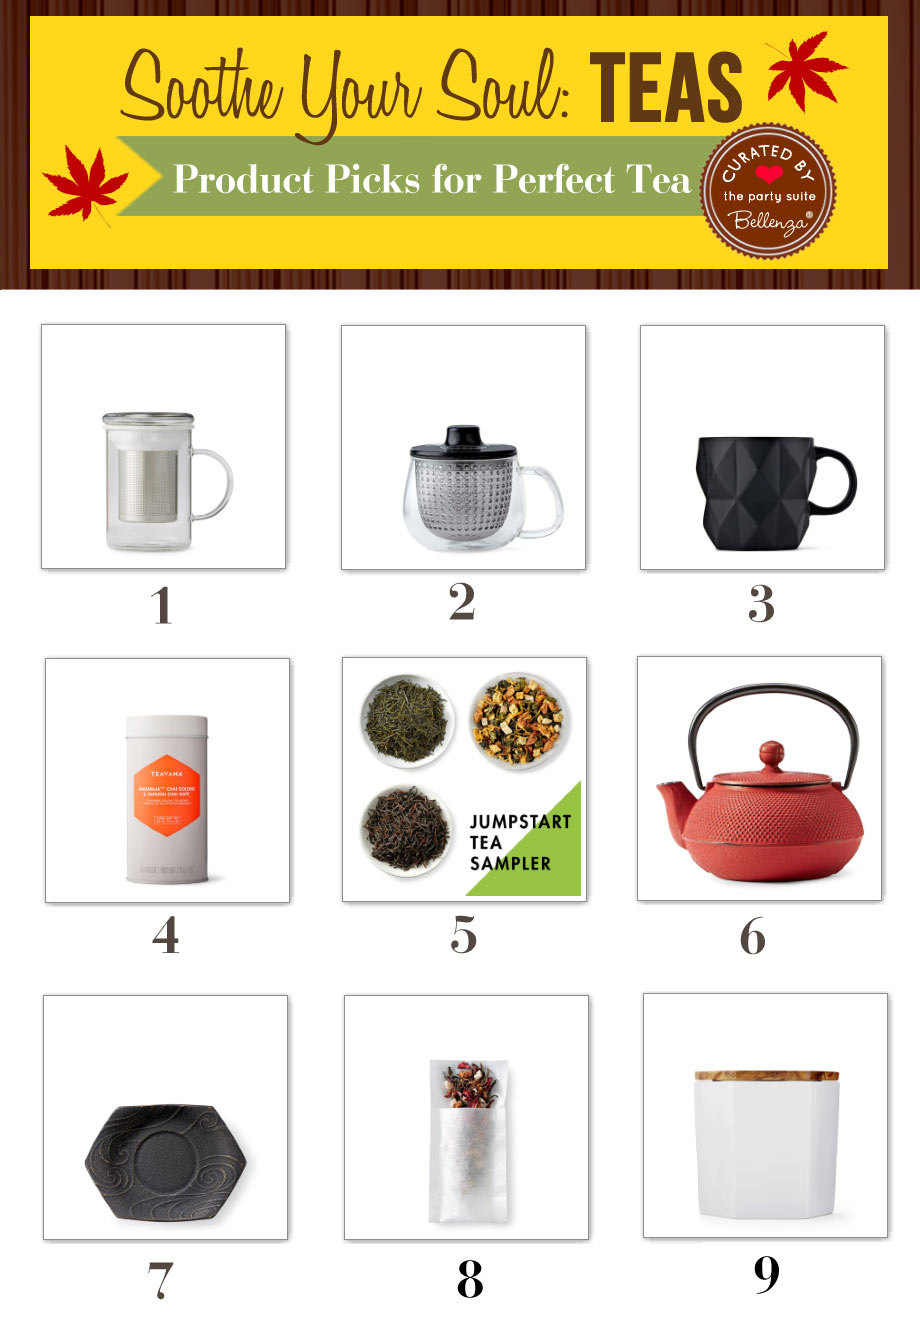 Product finds from Teavana. Includes tea cups, infusers, and tea selections.